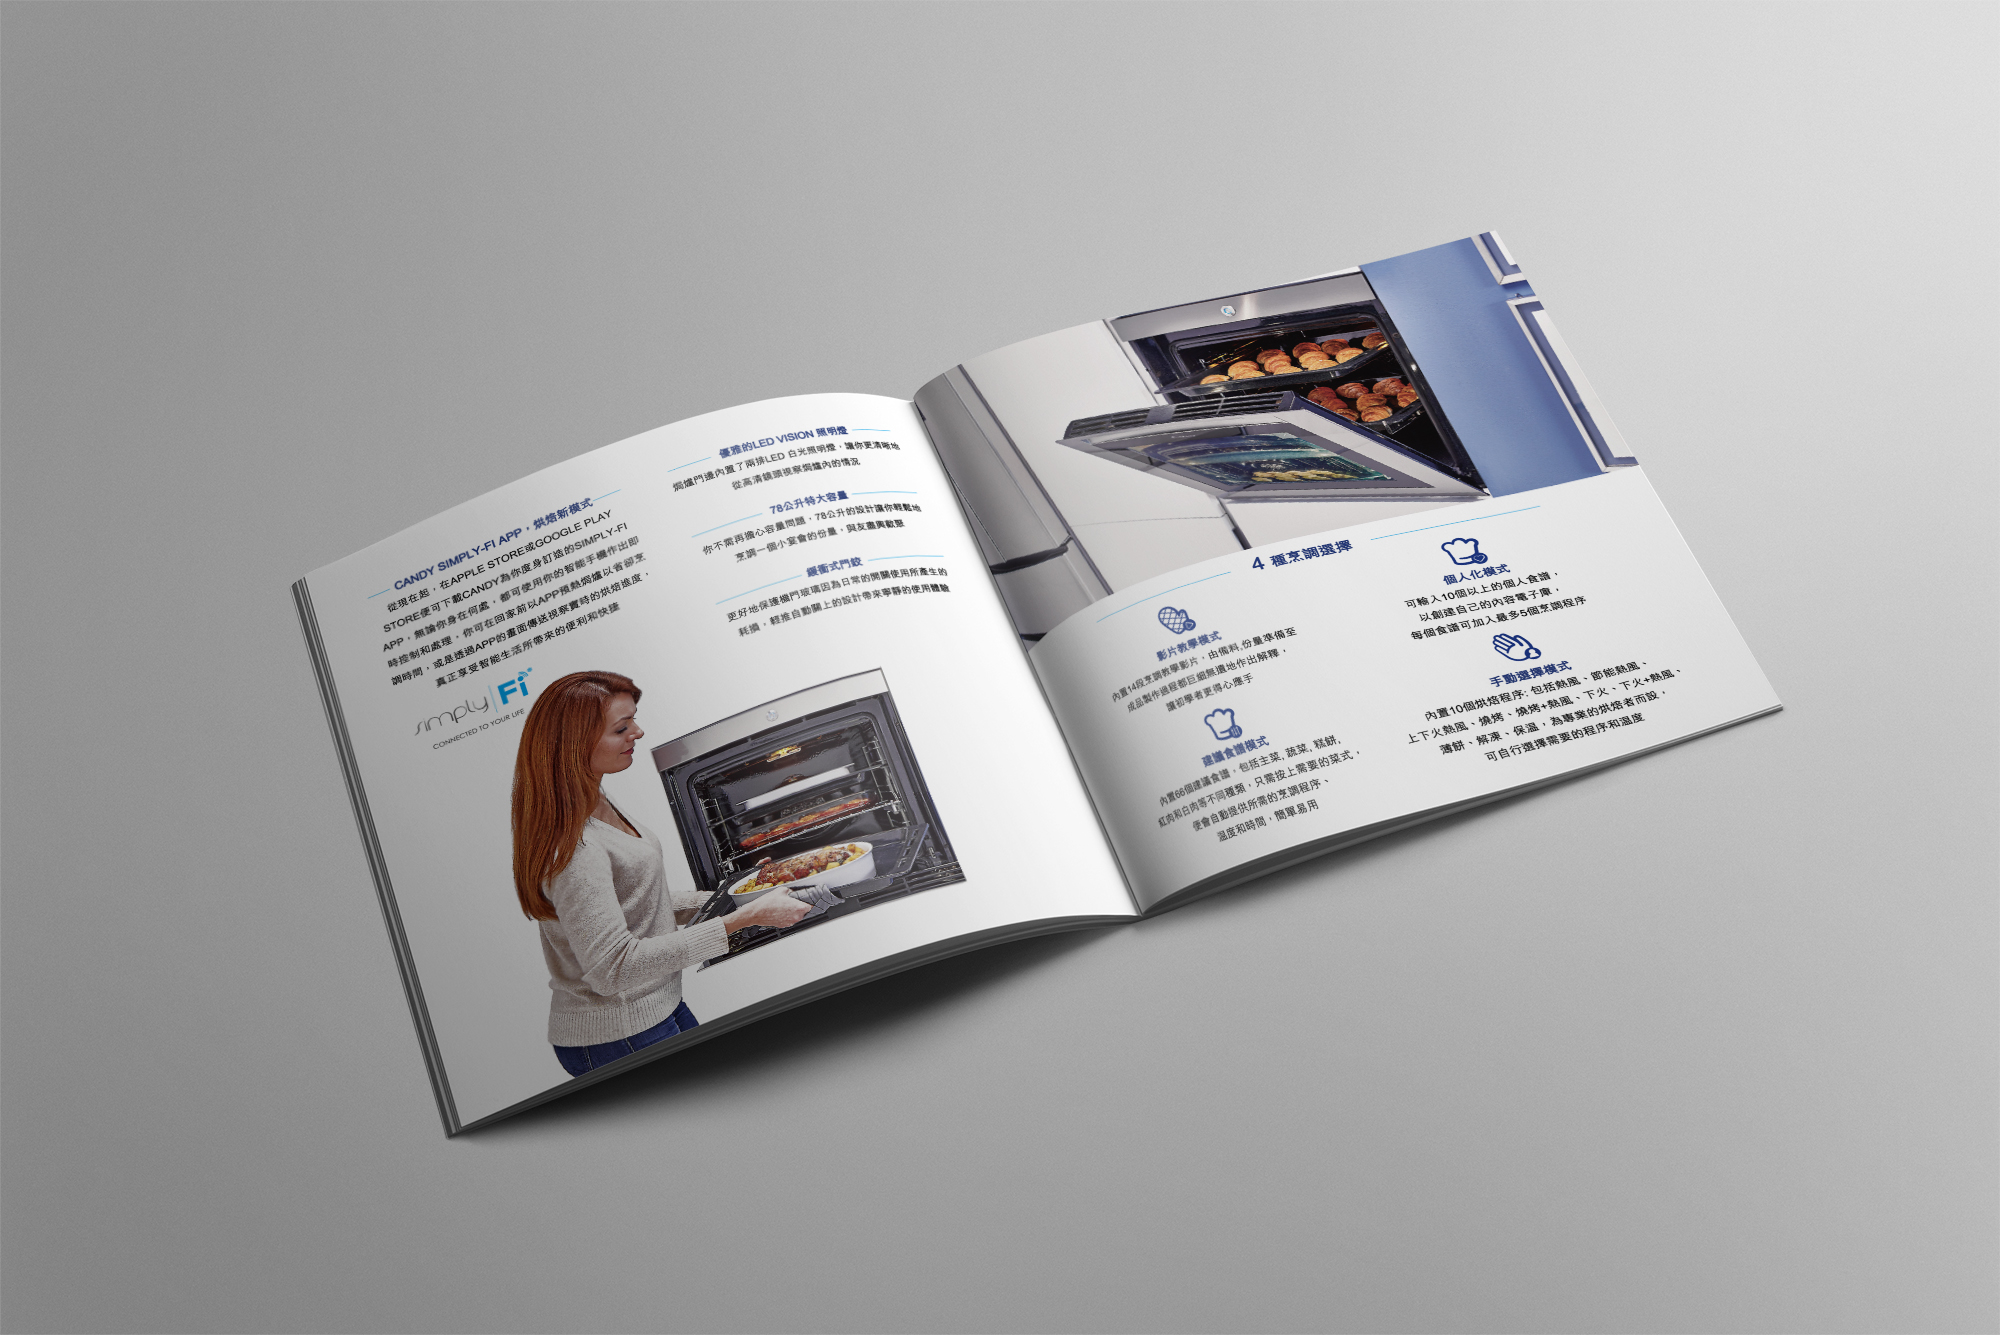 Brochure-Design-Advertising-Graphic-branding-online-marketing-illustration-poster-01